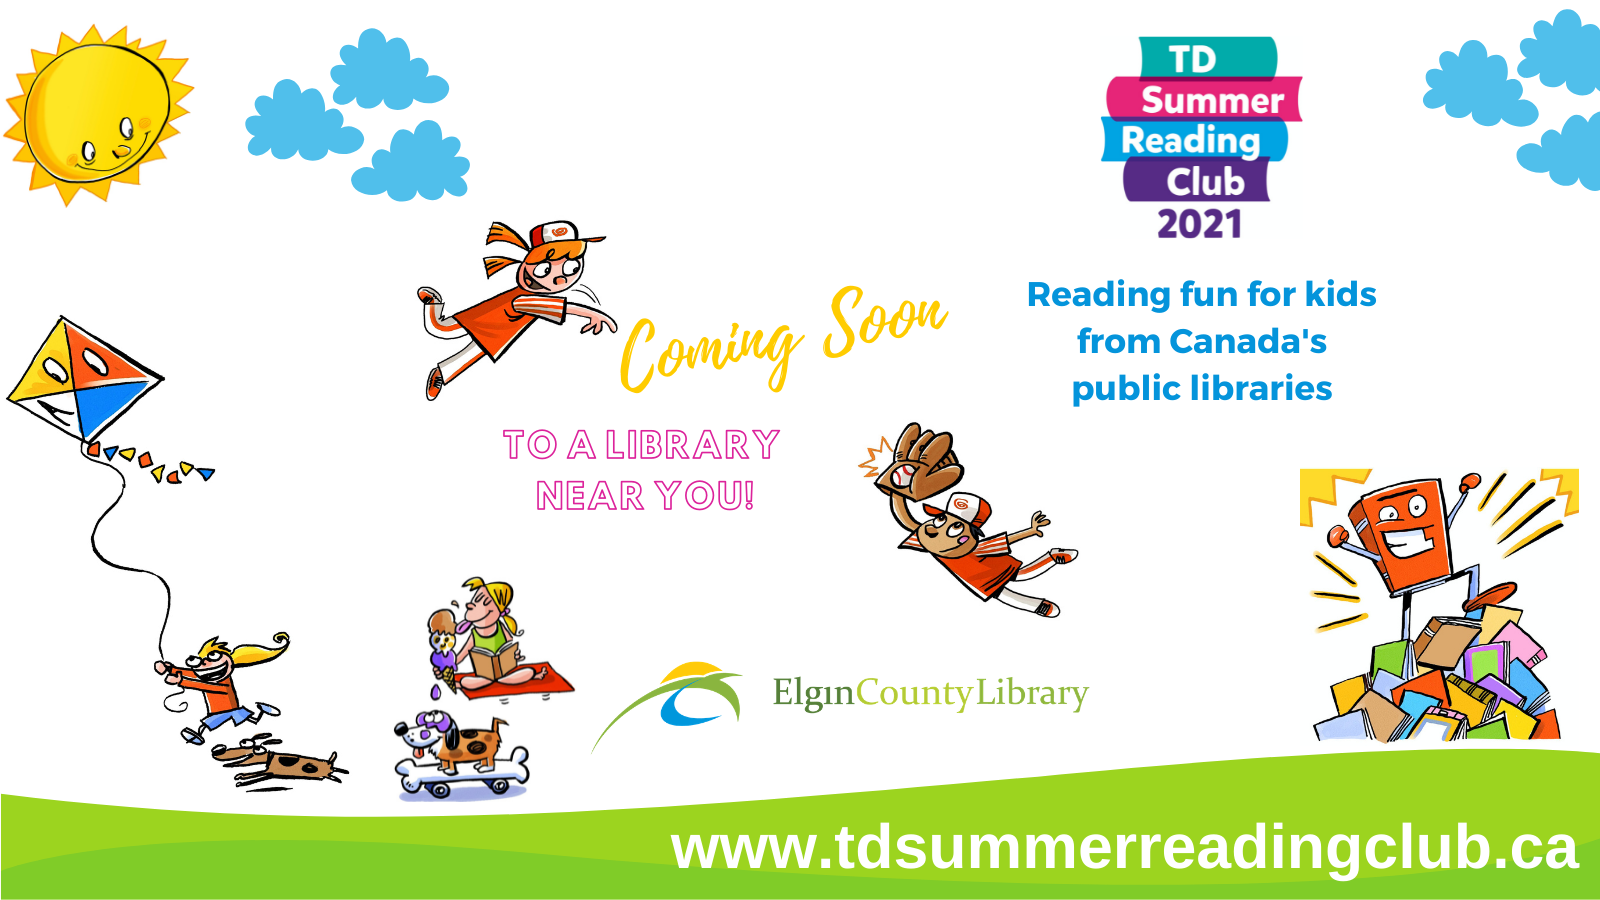 Summer Reading Club 2021 coming soon to a library near you